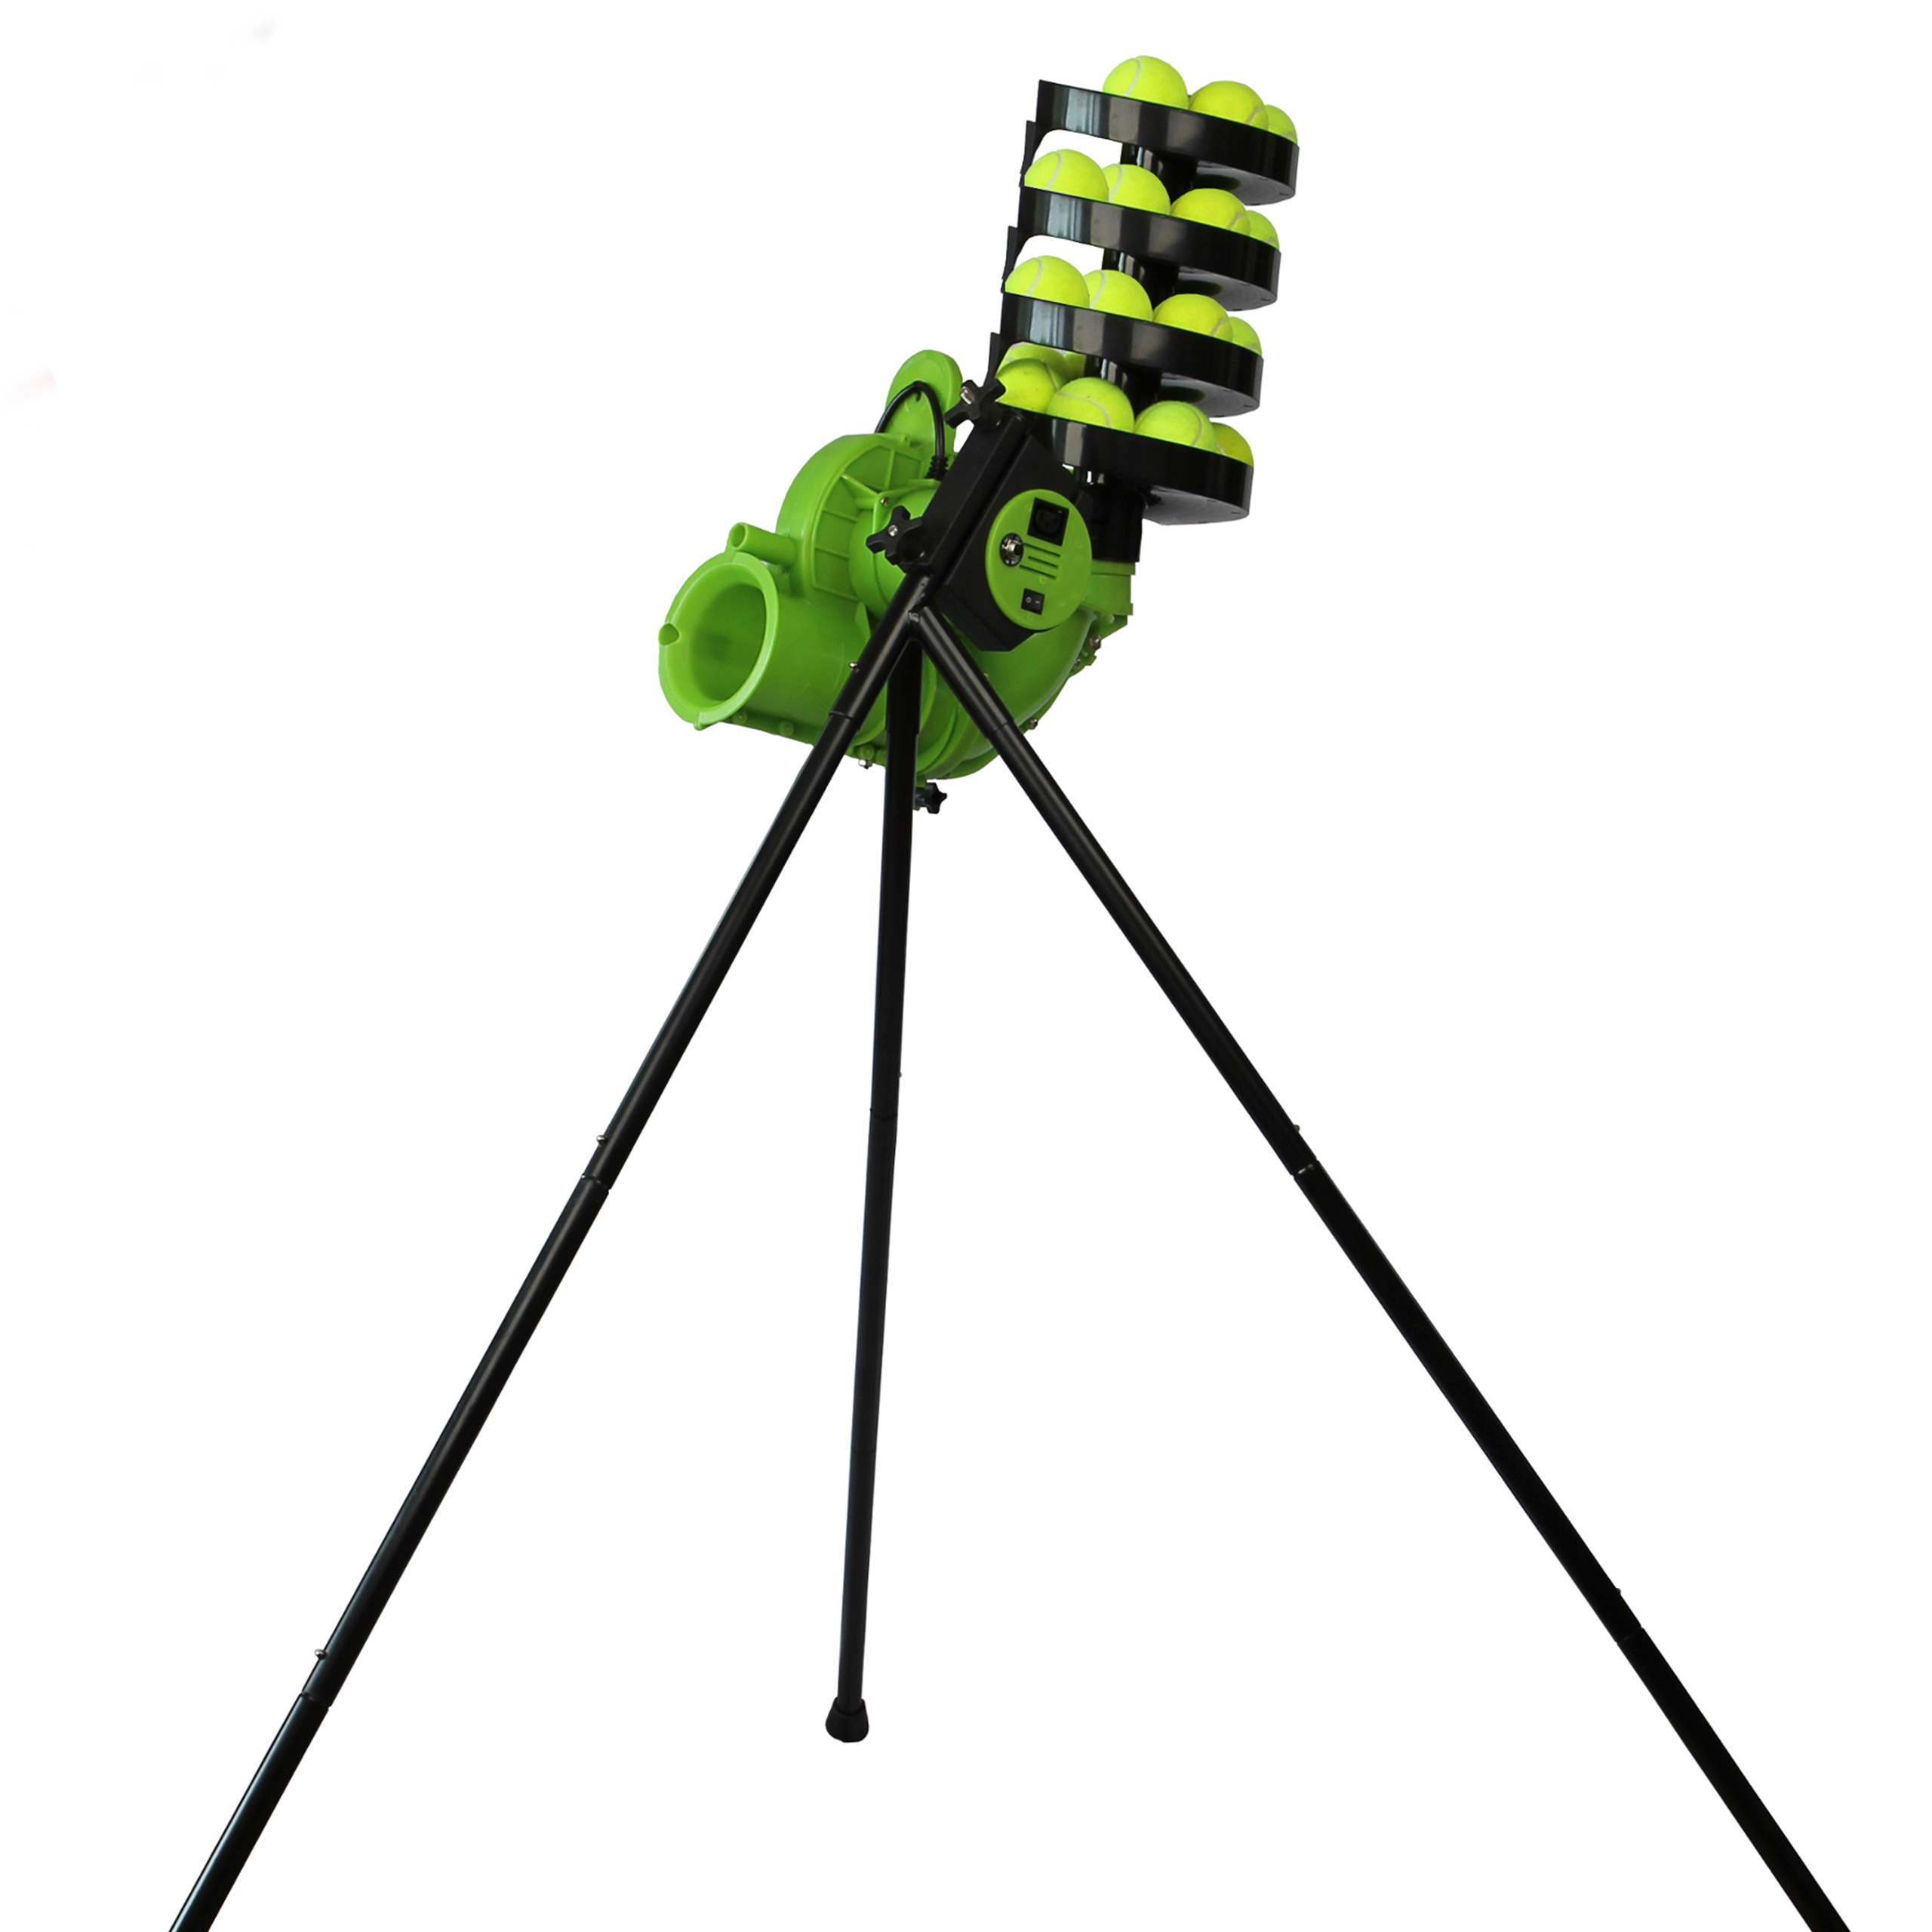 baseliner slam tennis ball machine />